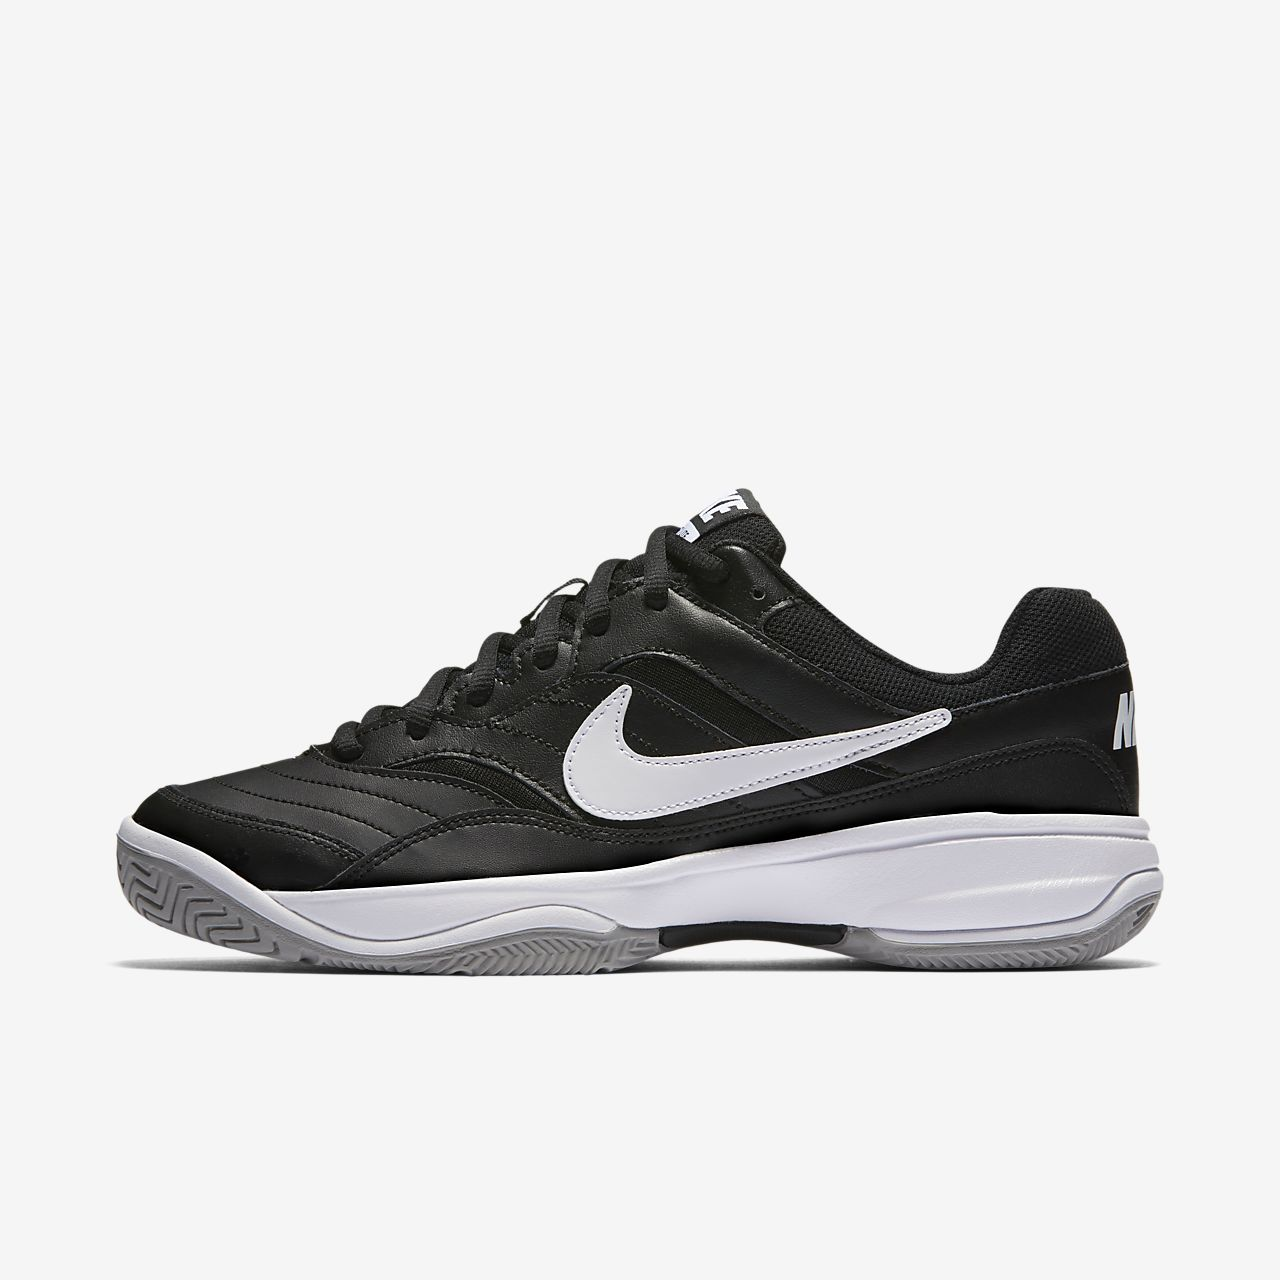 nike tennis shoes pictures